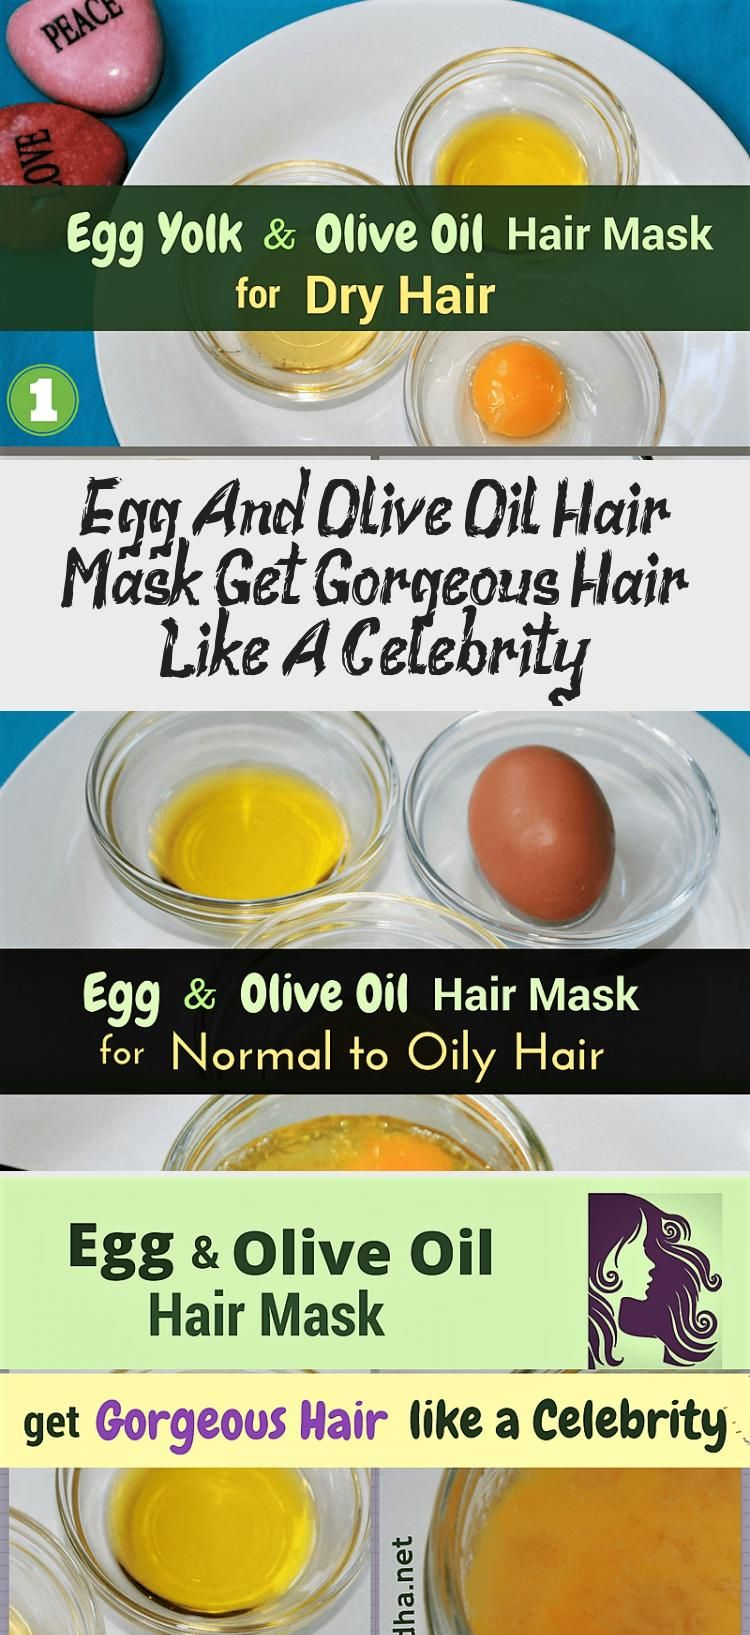 Supplement for Hair Growth} and olive oil and egg hair mask for hair growth #hairgrowthSpray #hairgrowthRoutine #hairgrowthTimeLapse #AppleCiderVinegarhairgrowth #ManeNTailhairgrowth